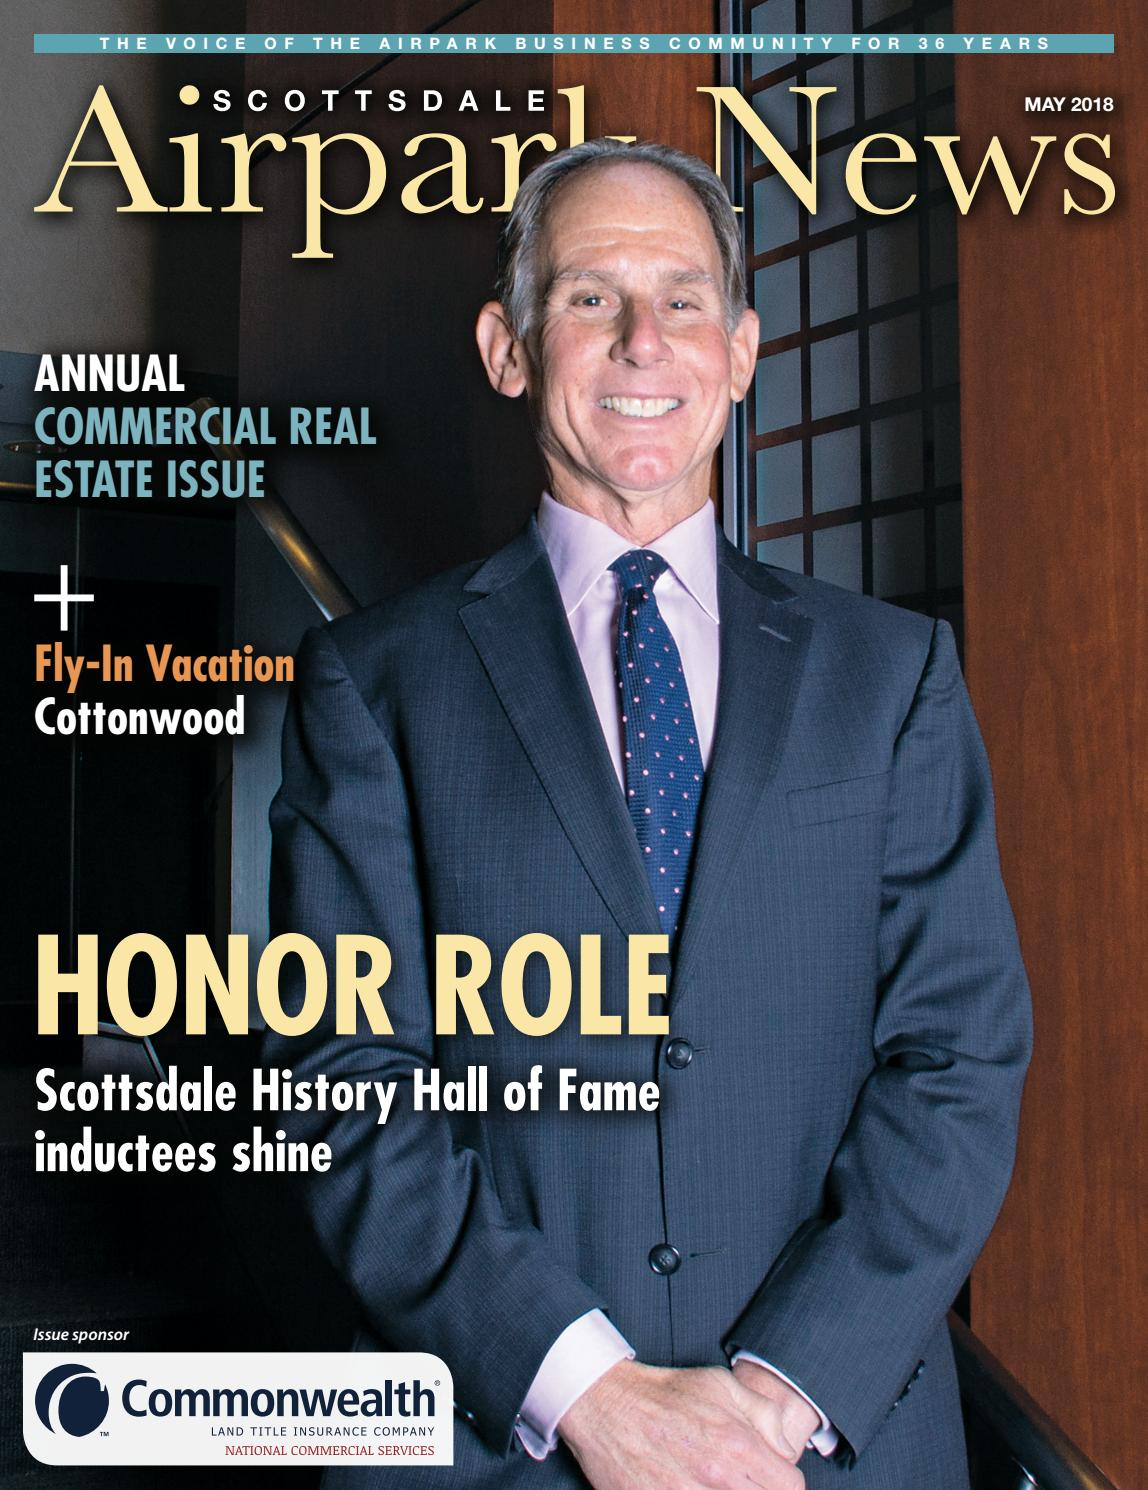 Scottsdale Airpark News May 2018 By Times Media Group Issuu